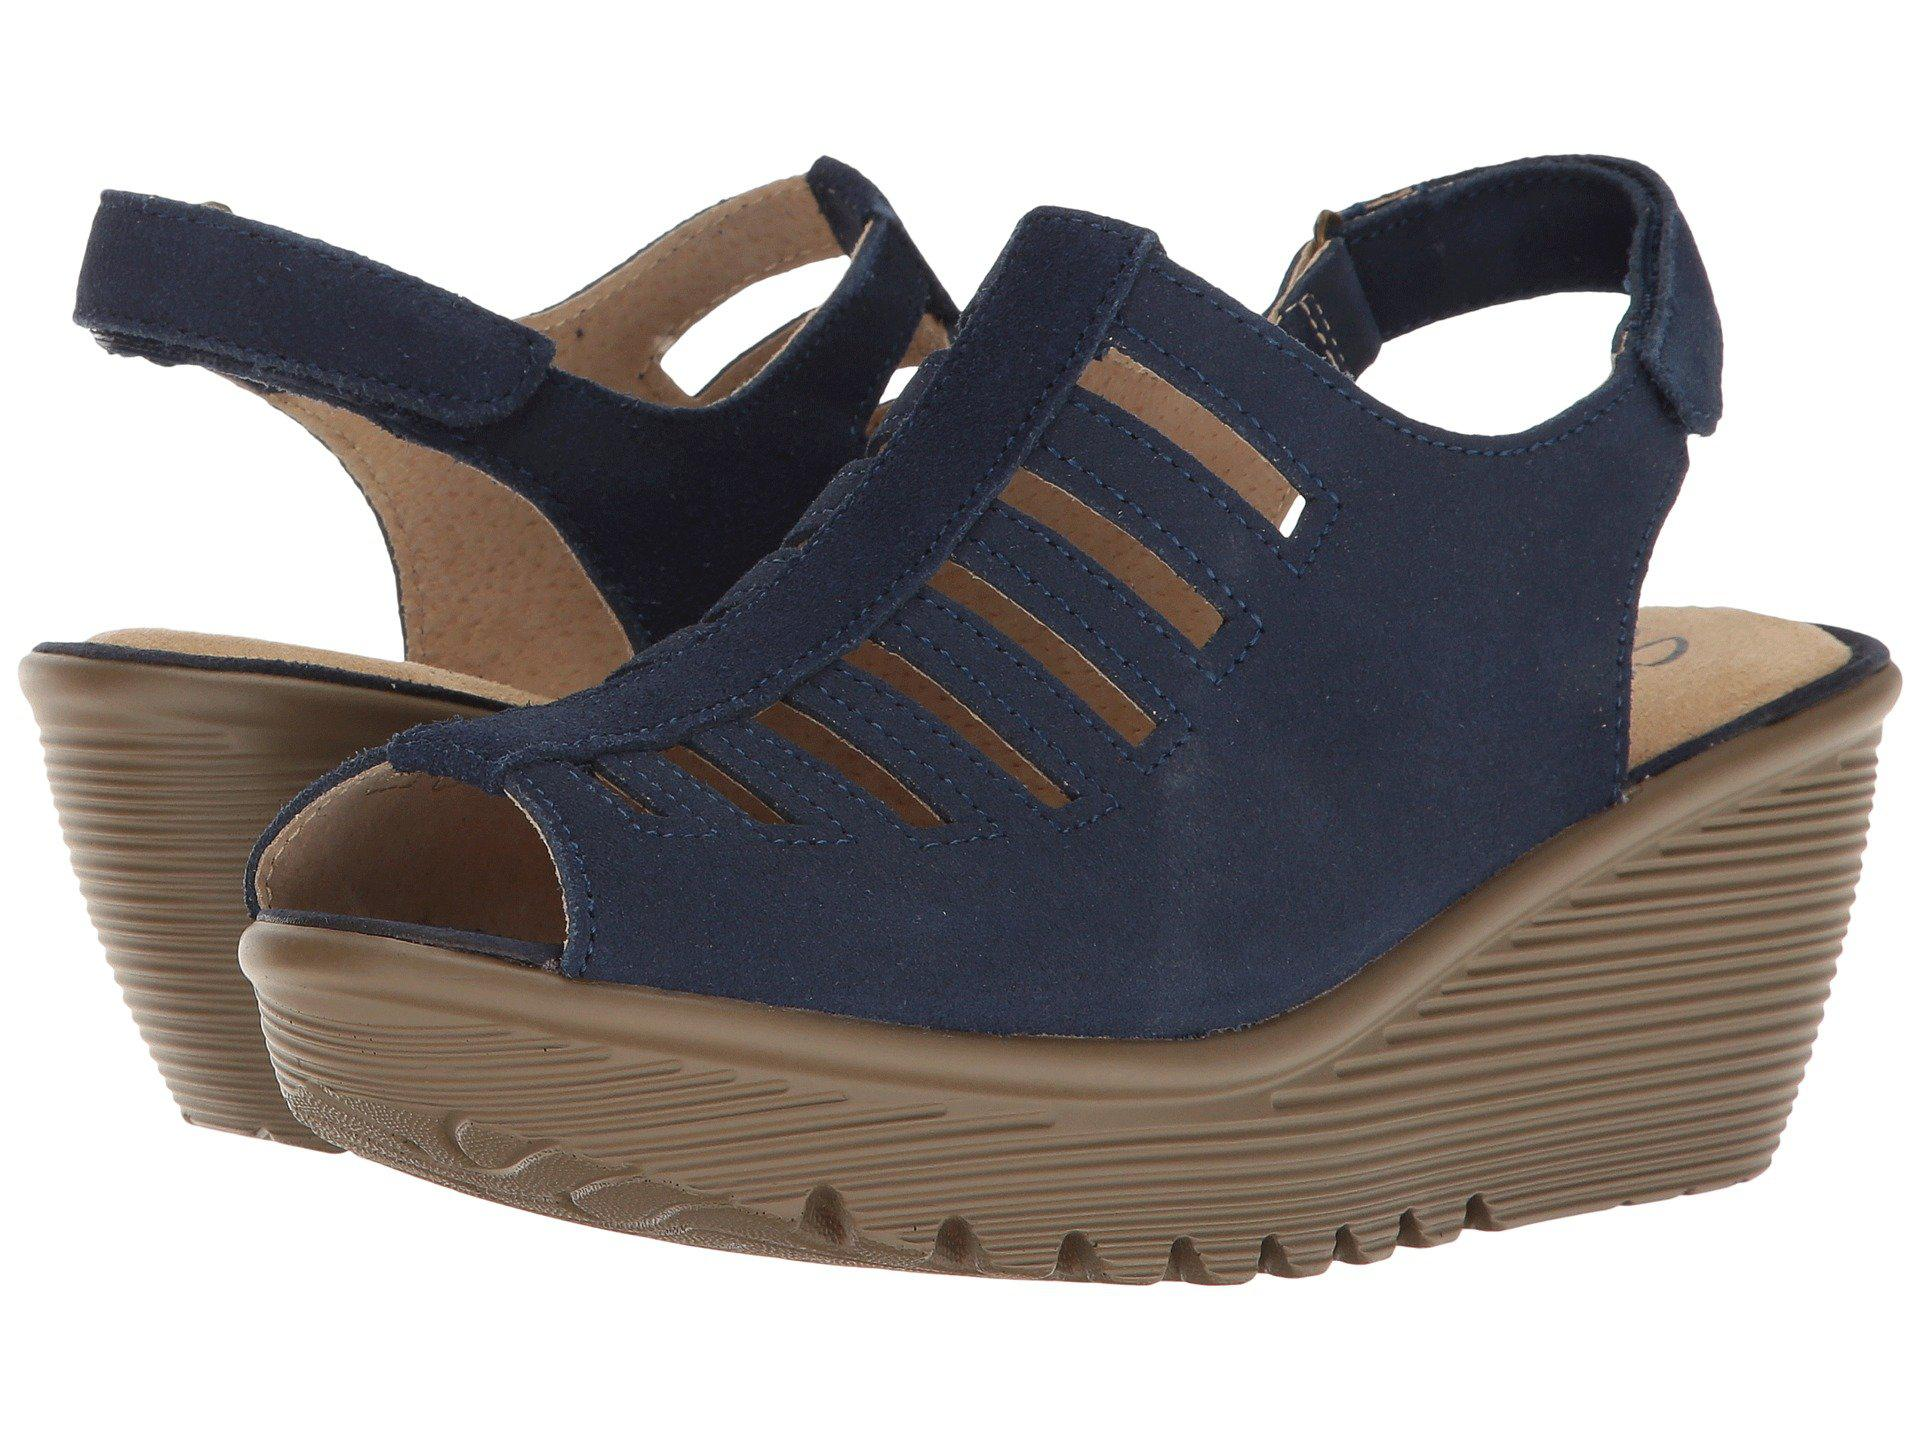 9be653a29d Lyst - Skechers Parallel-trapezoid Wedge Sandal in Blue - Save 46%